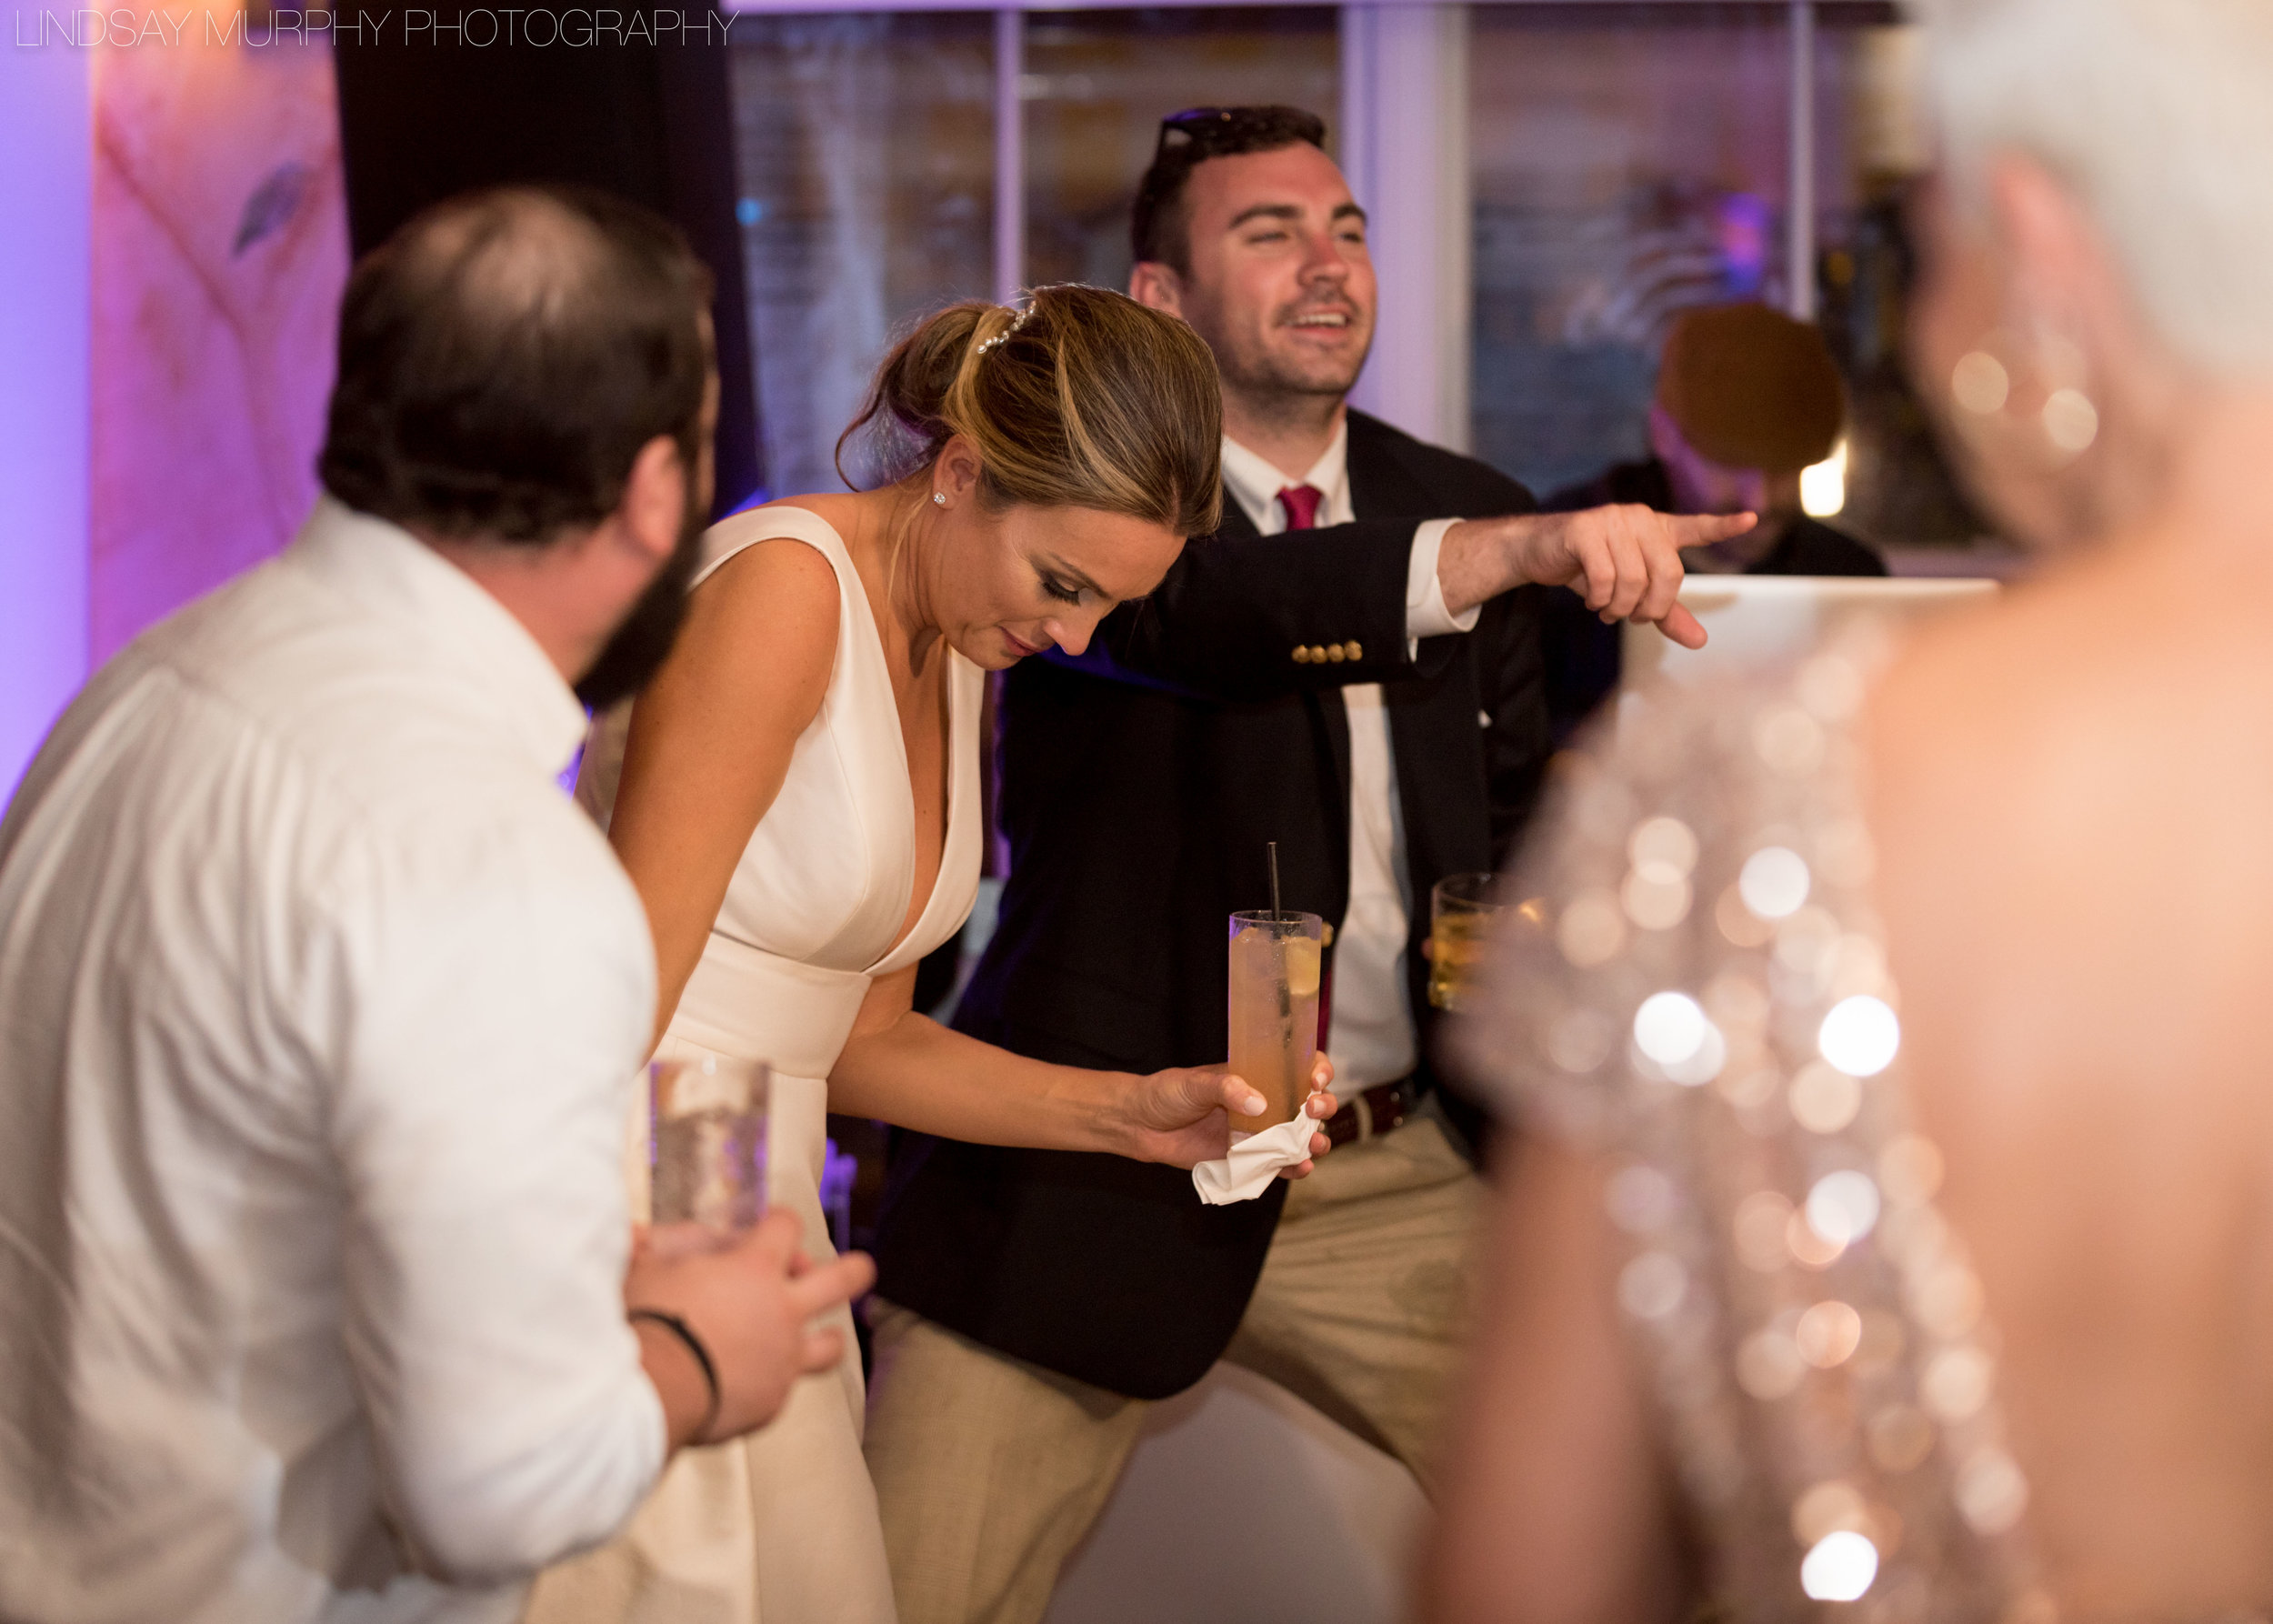 portland_wedding_photographer-713.jpg